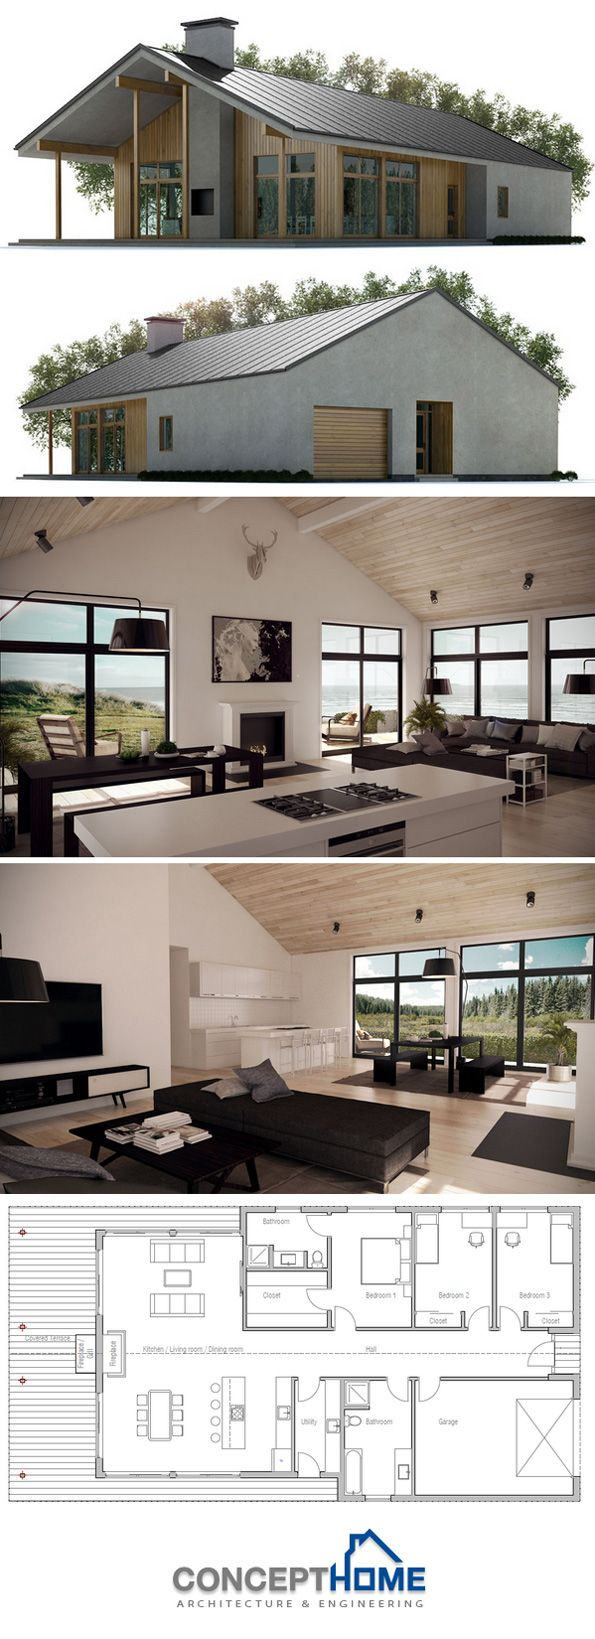 kitchen dining living layout perfectadd dropped living